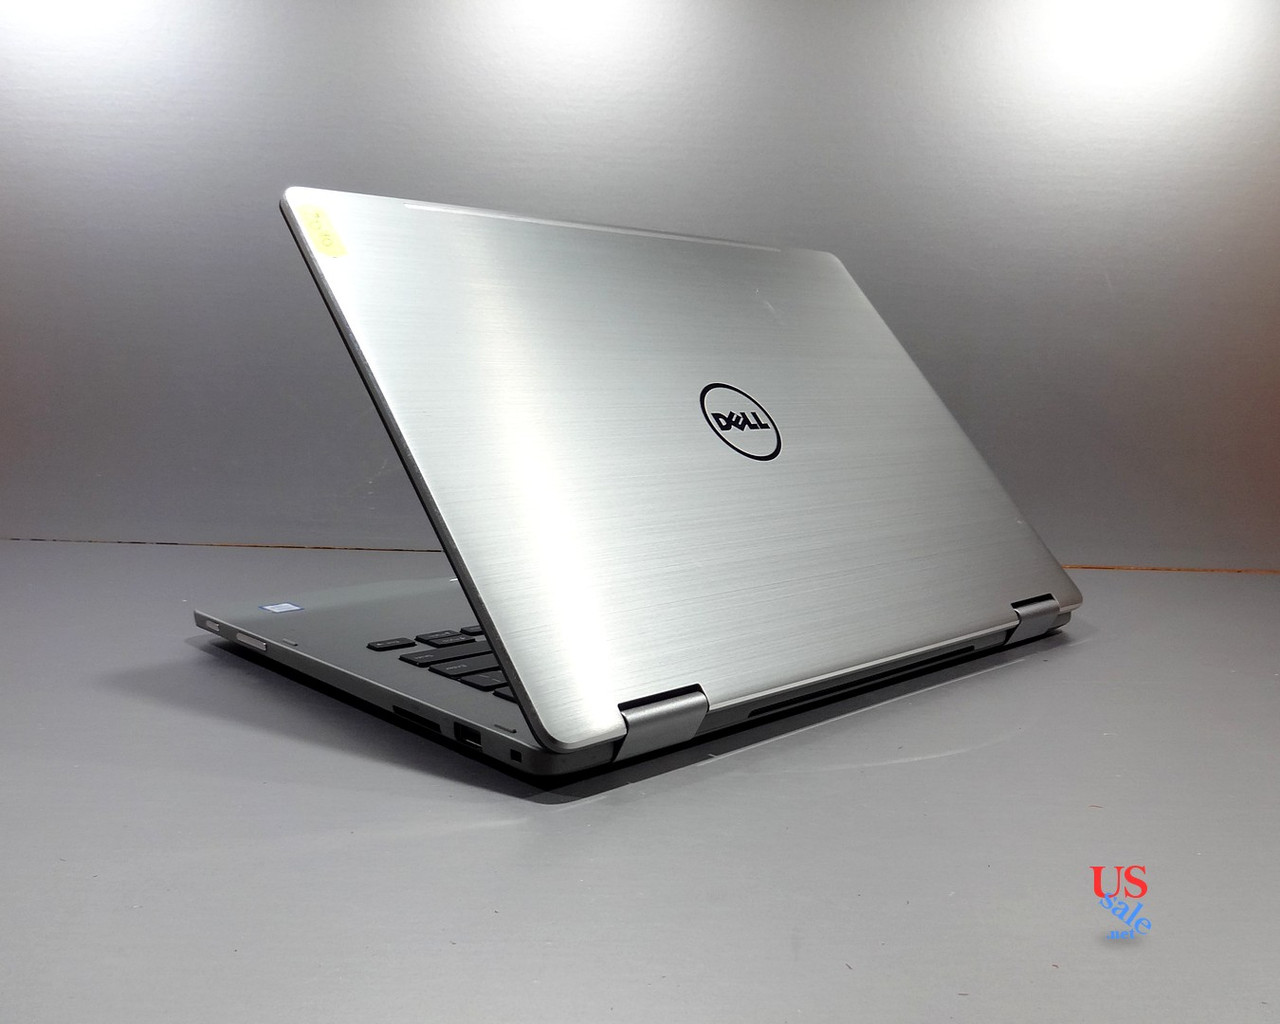 "Ноутбук Dell Inspiron 13-7368 13.3"" Intel Core i5-6200u 2.3 Ghz, 8Gb DDR4, 128Gb SSD. Гарантія!"